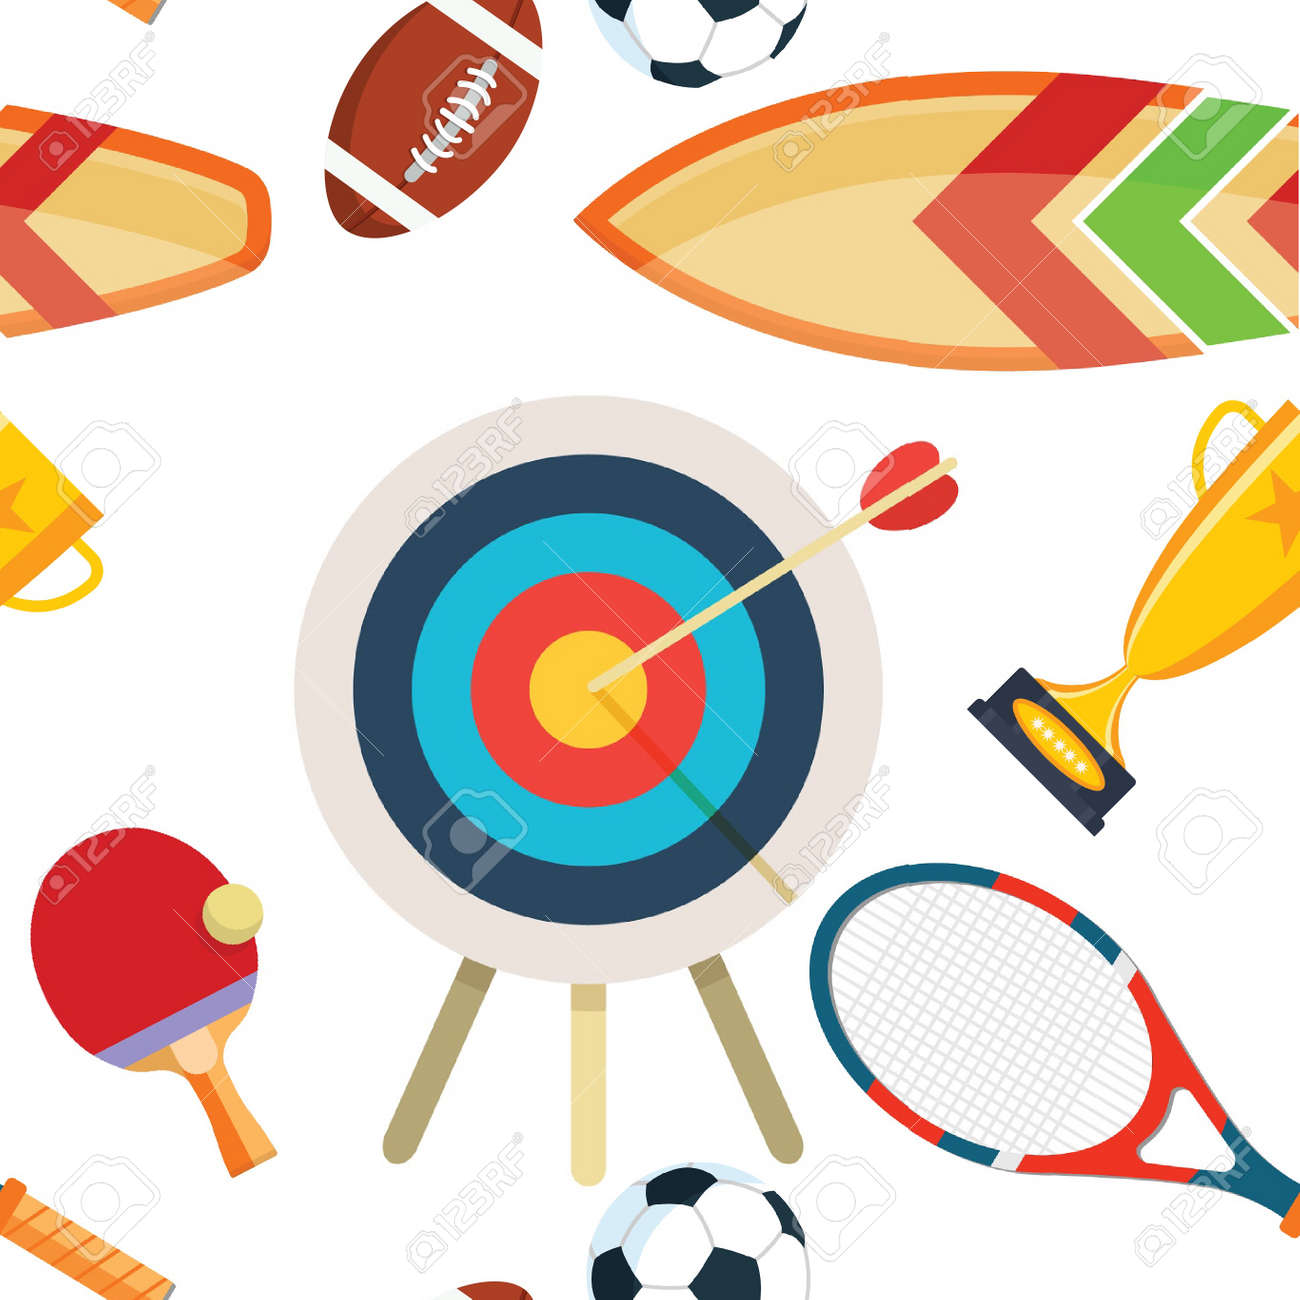 Flat Design Sport Concept Sports Equipment Background Flat Objects